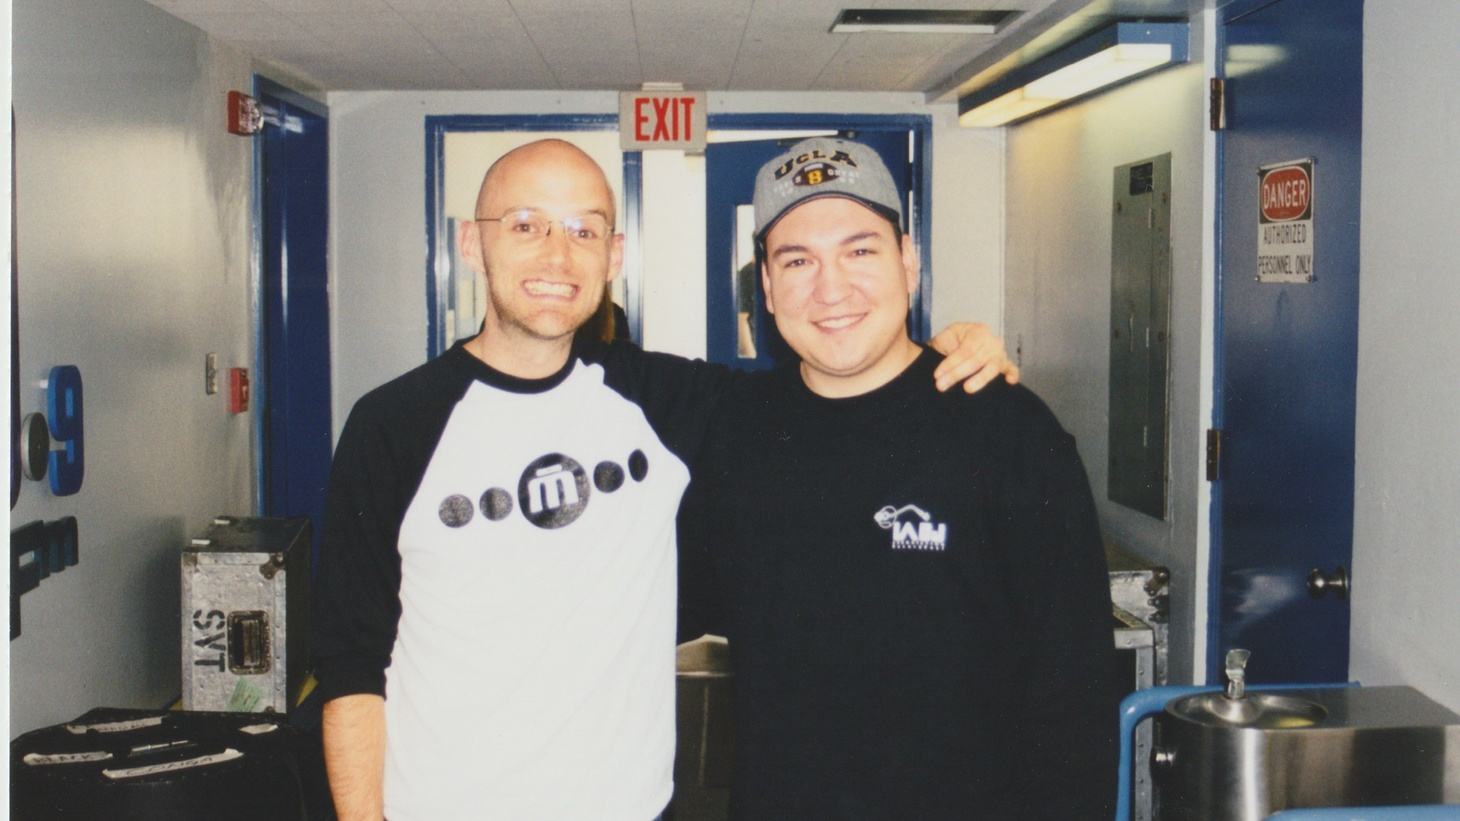 Moby and Raul Campos at KCRW on June 11, 1999.